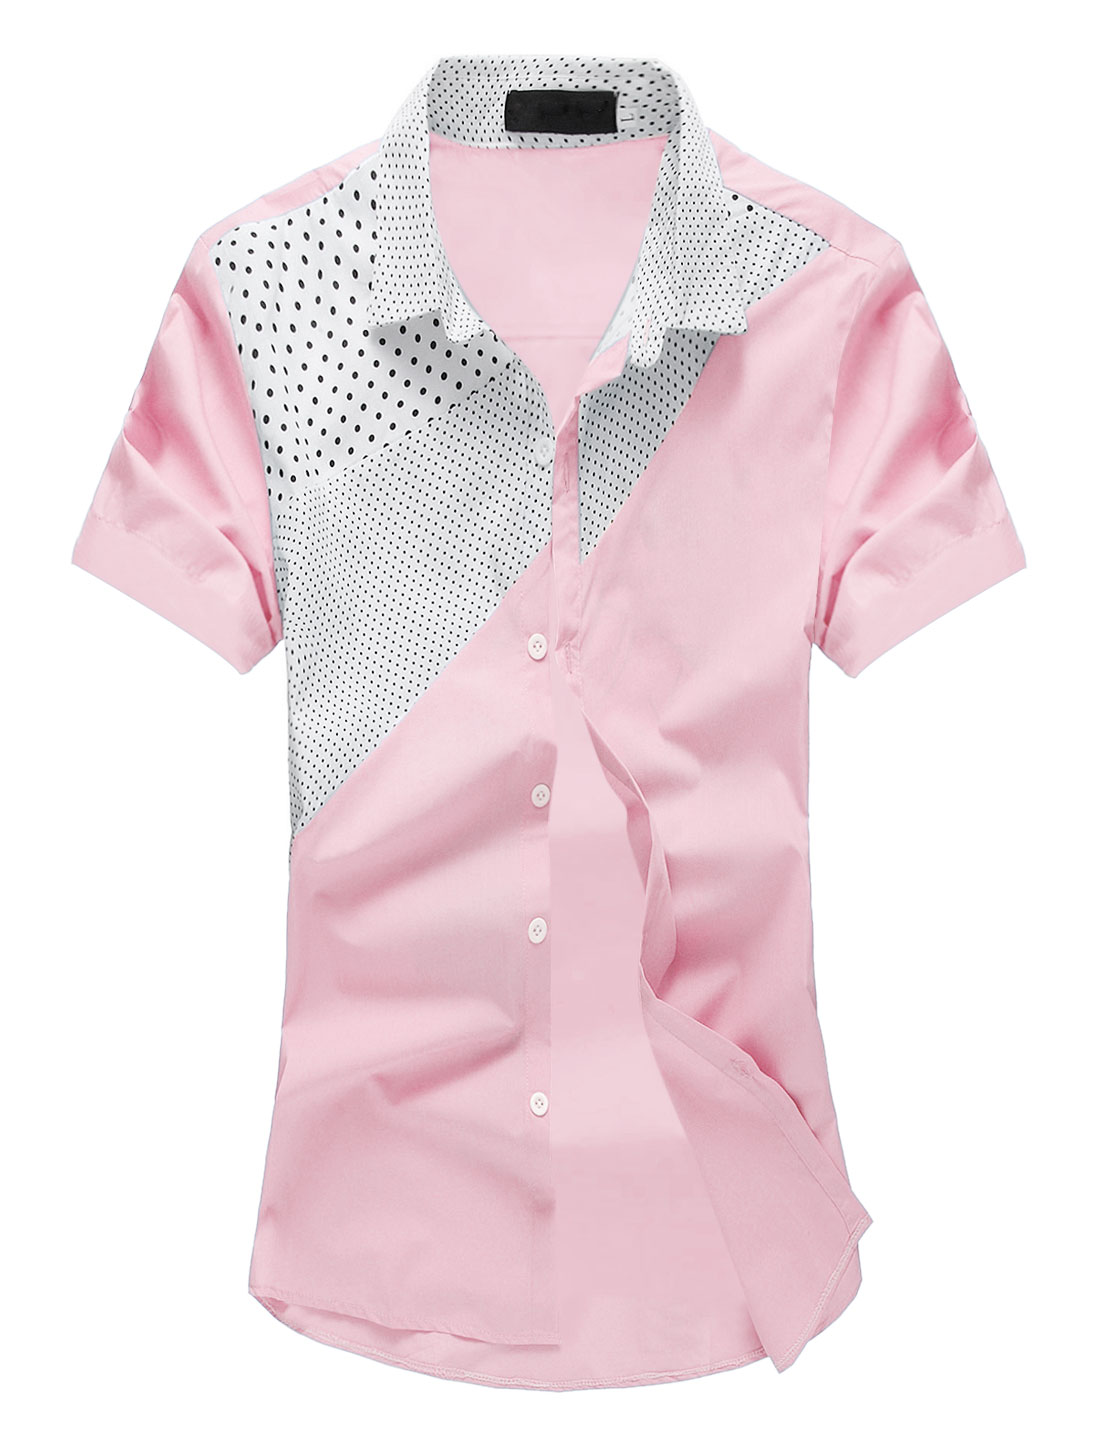 Men Dots Prints Contrast Color Point Collar Casual Shirt Light Pink M